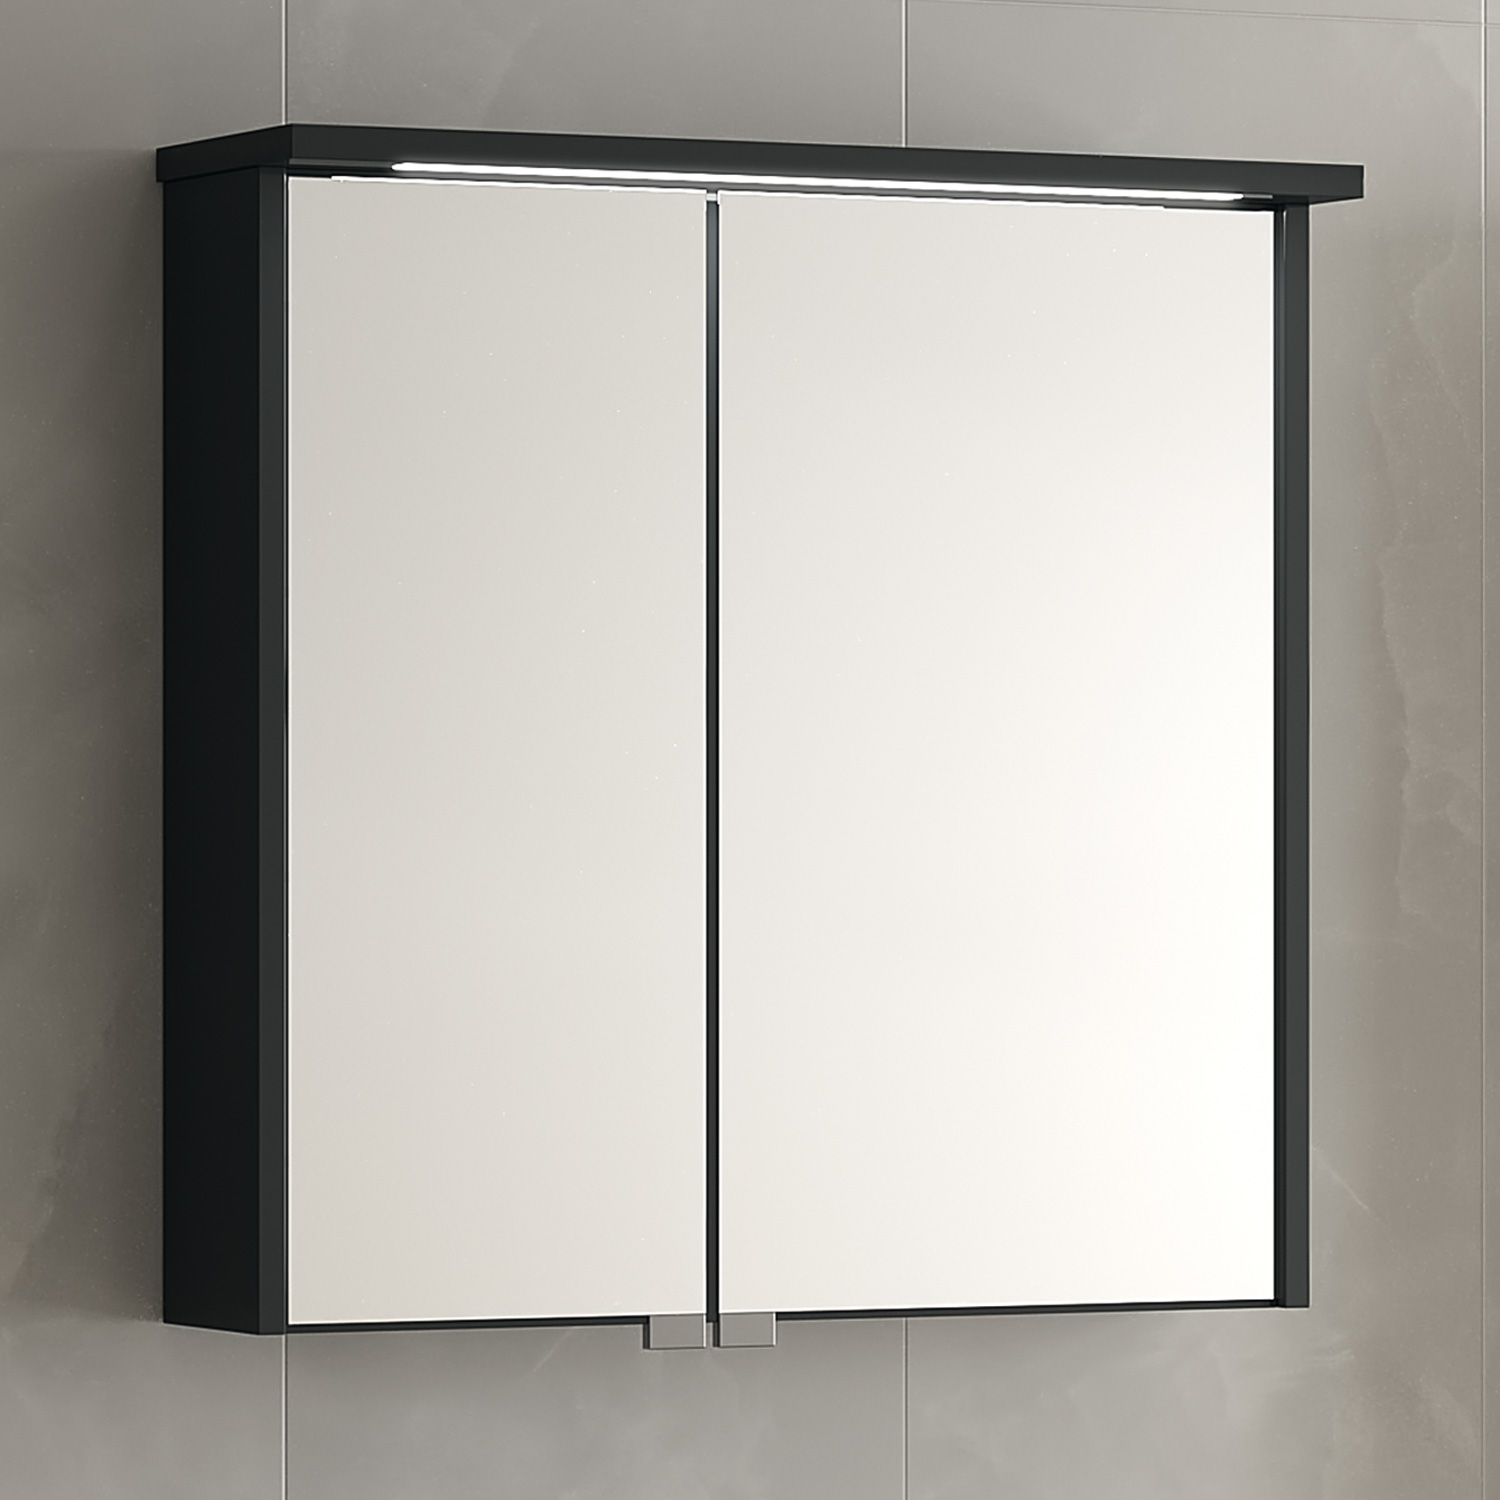 armoire de toilette meubles de salle de bains. Black Bedroom Furniture Sets. Home Design Ideas